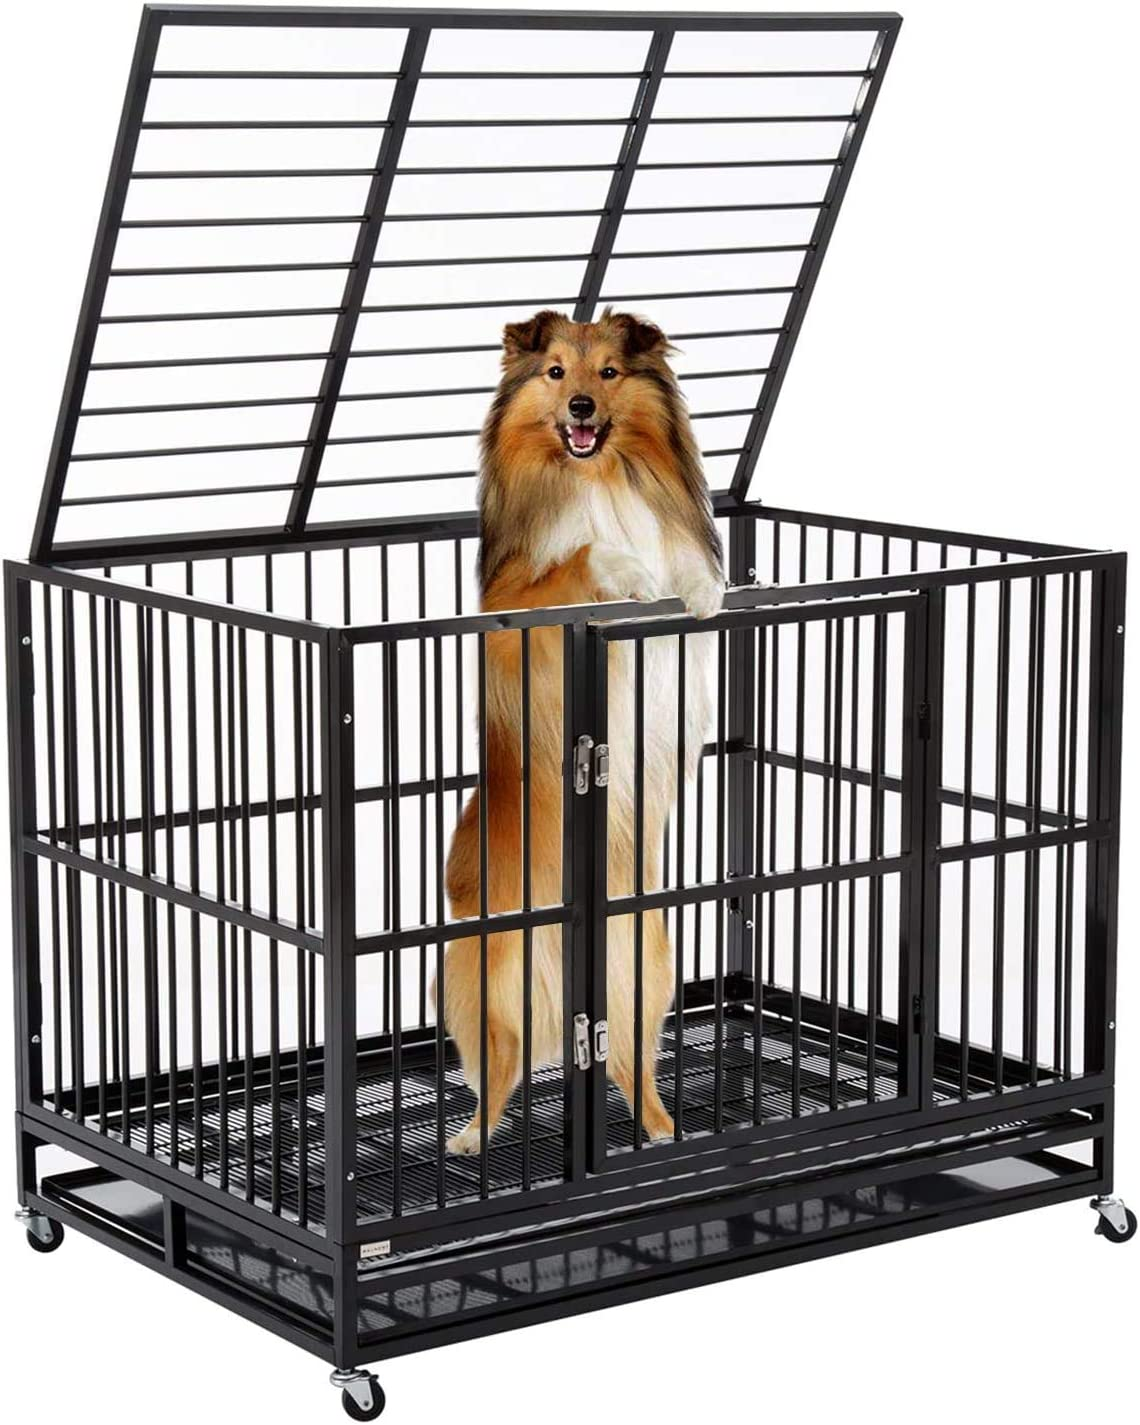 walnest Large Dog Crate Cage Kennel Playpen Heavy Duty Strong Metal Double Door